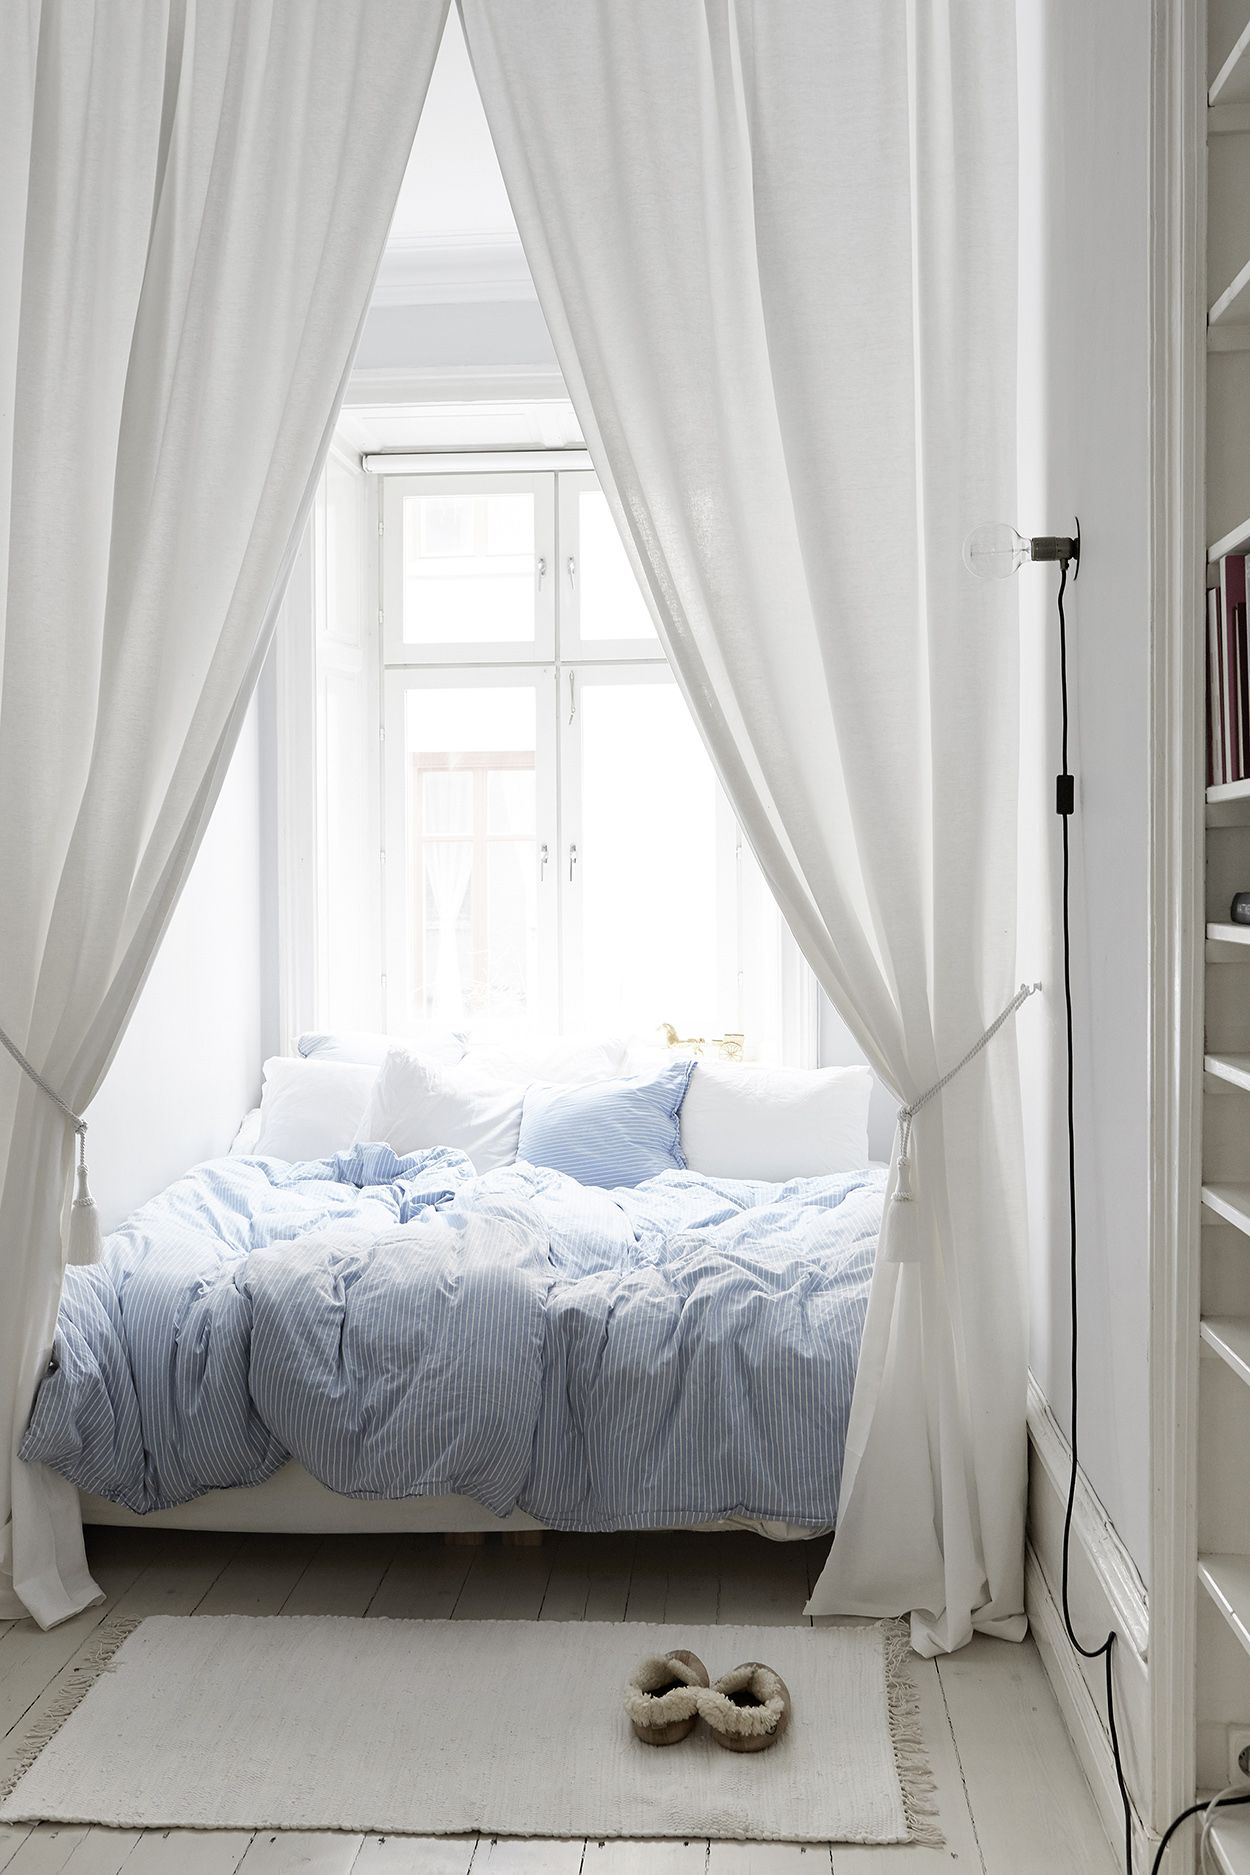 Small cozy   light bedroom. Small cozy   light bedroom   BEDROOM   BLOG   Pinterest   Light